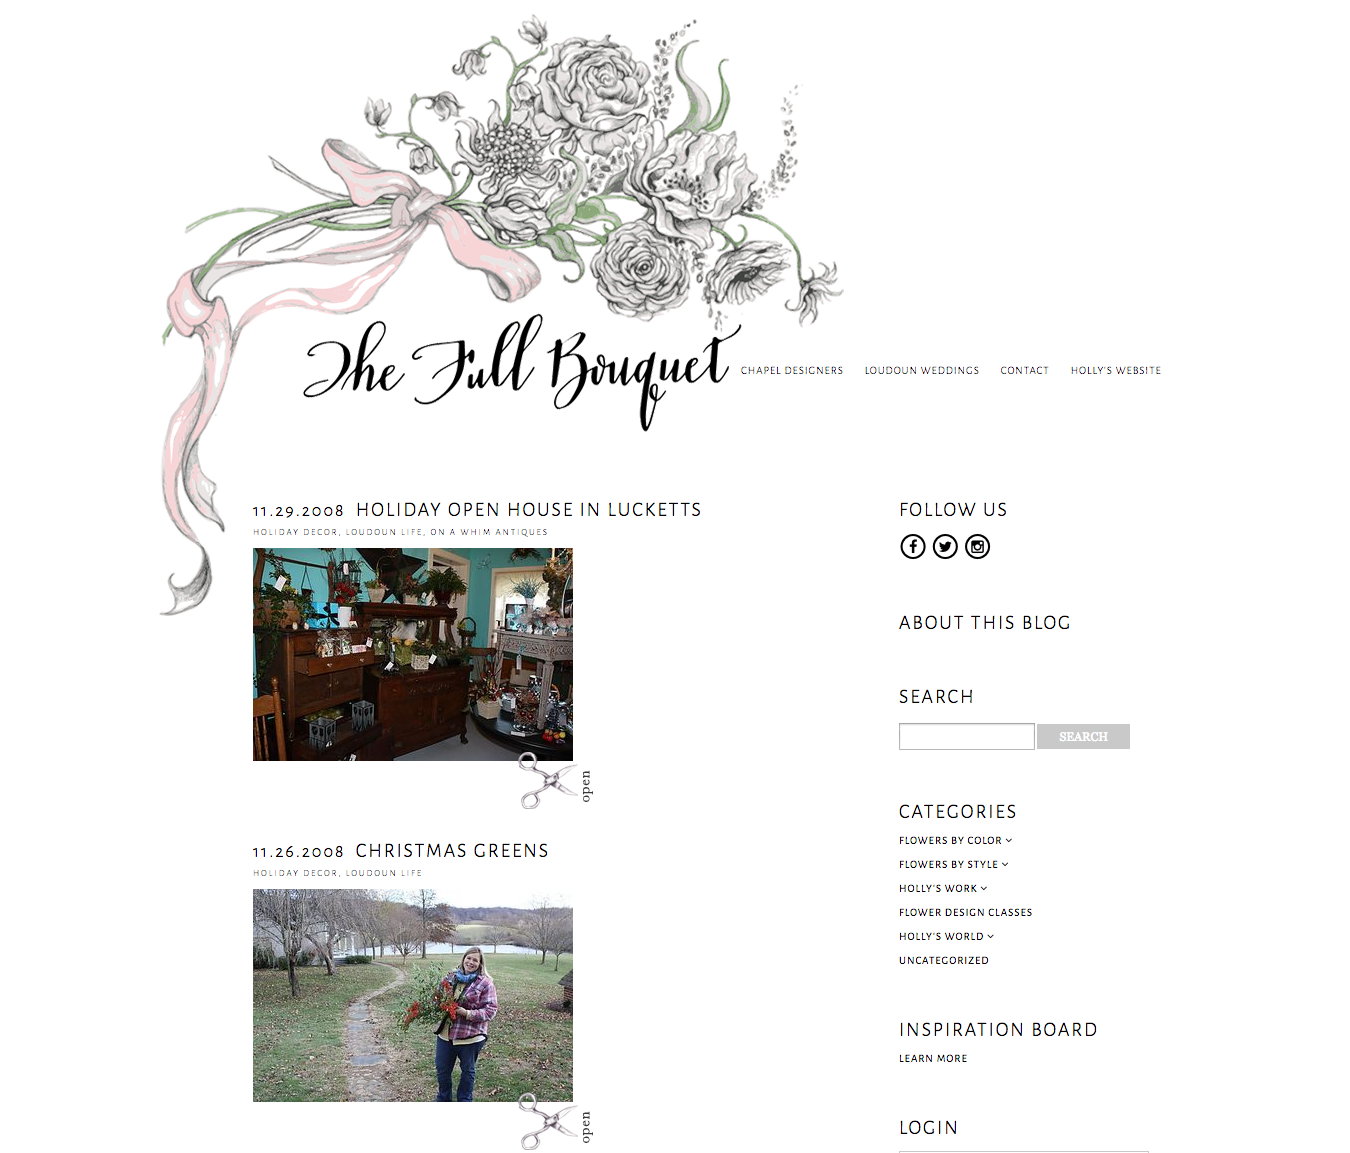 Original Posts from the Full Bouquet Blog, 2008.